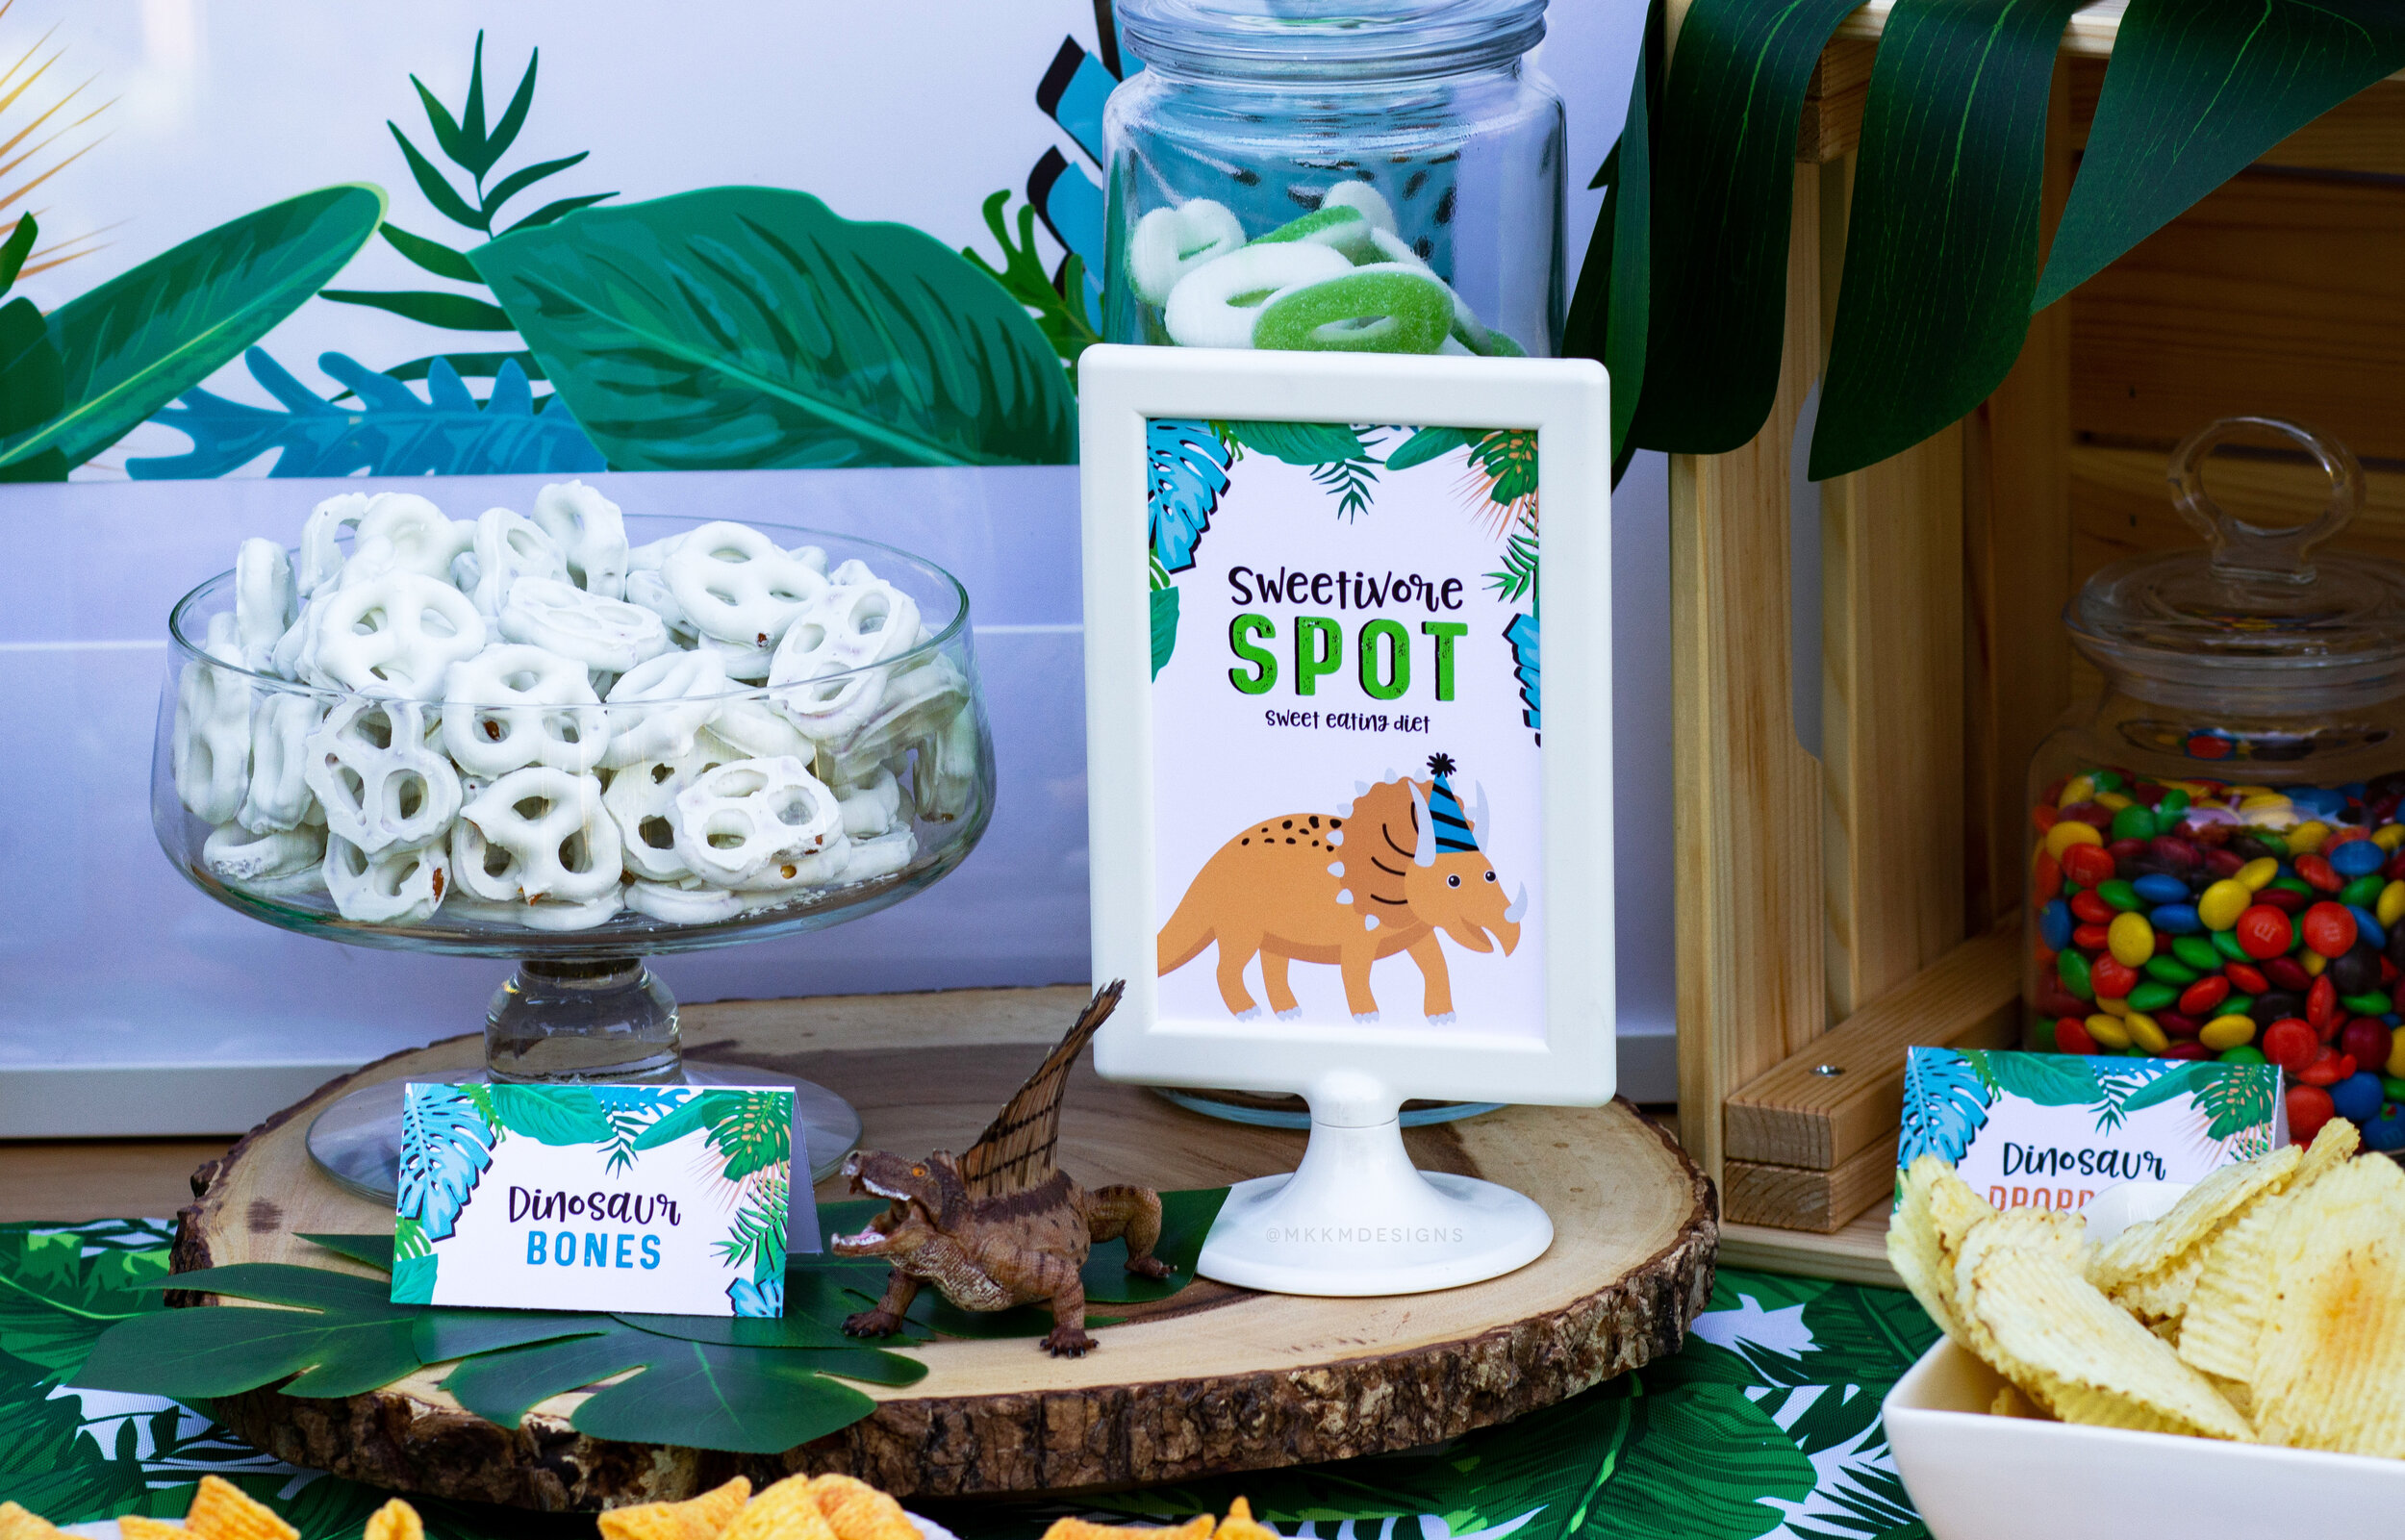 Sweetivore dino party sign. This dessert table sign is a fun additional to setting up a candy station. Designed by MKKMDesigns